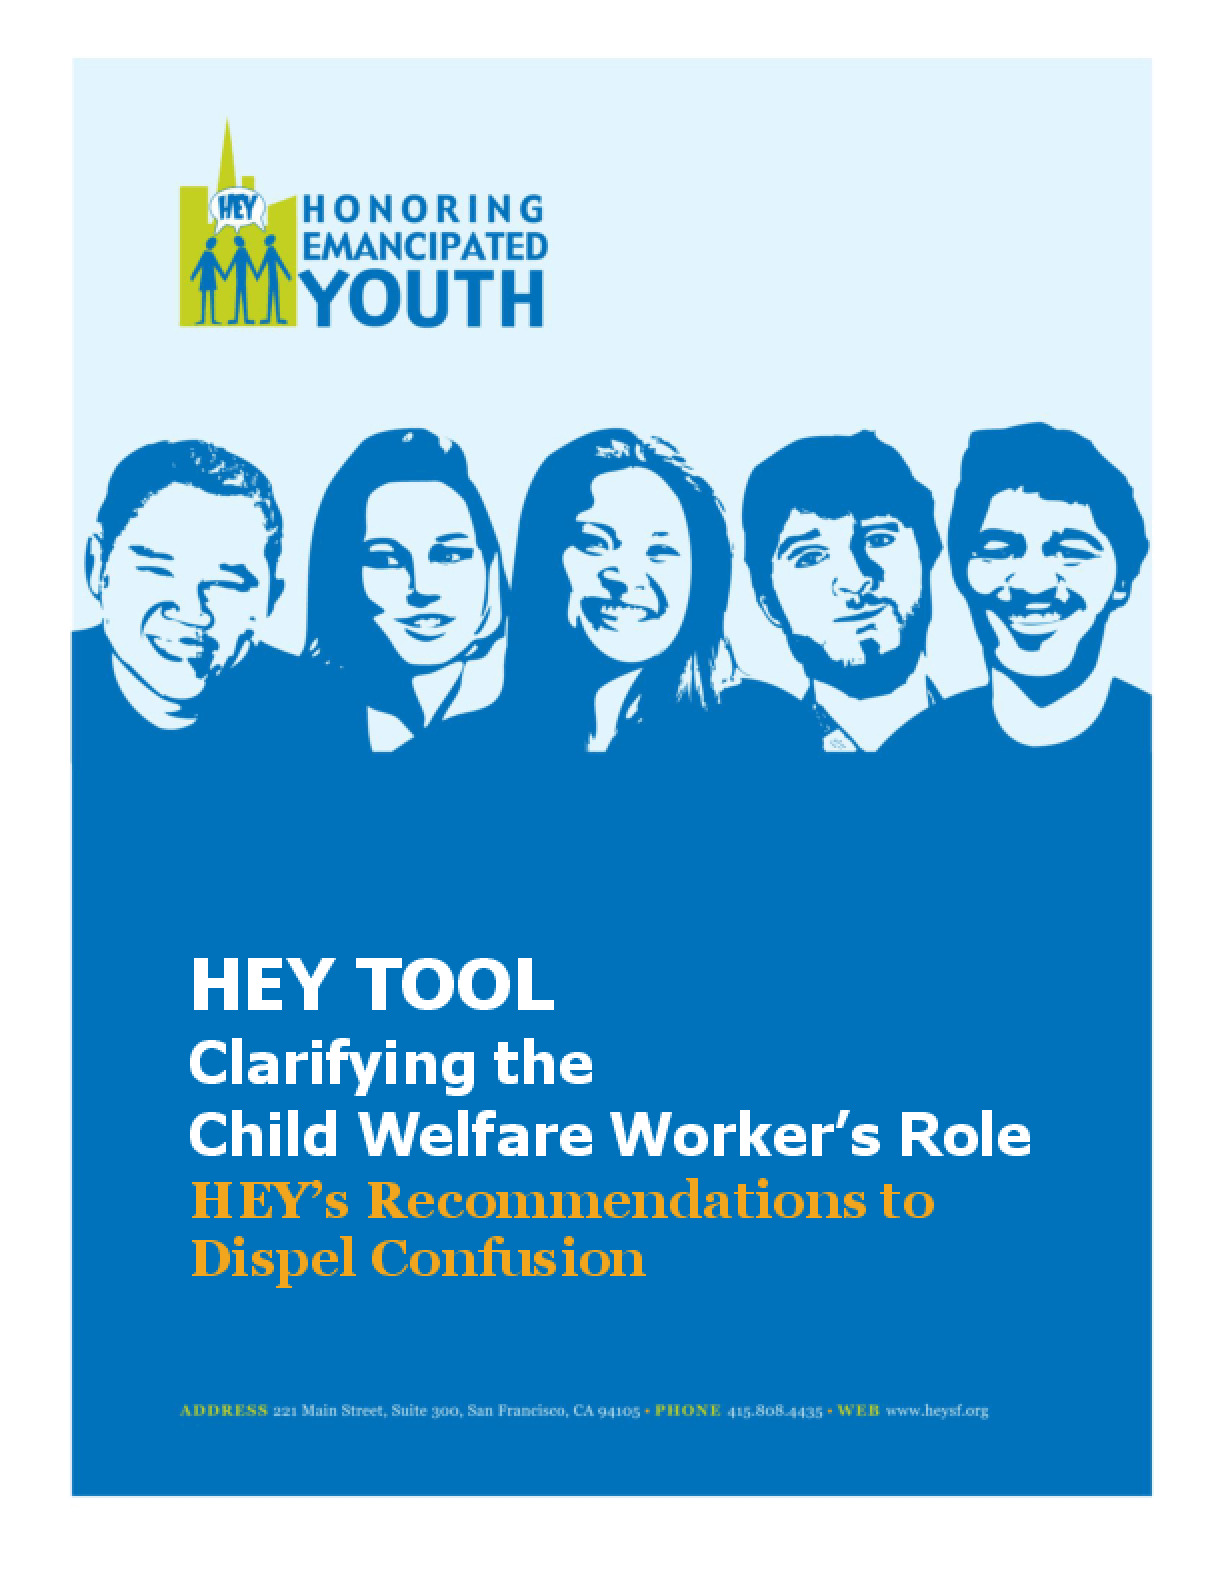 HEY TOOL: Clarifying the Child Welfare Worker's Role - HEY's Recommendations to Dispel Confusion